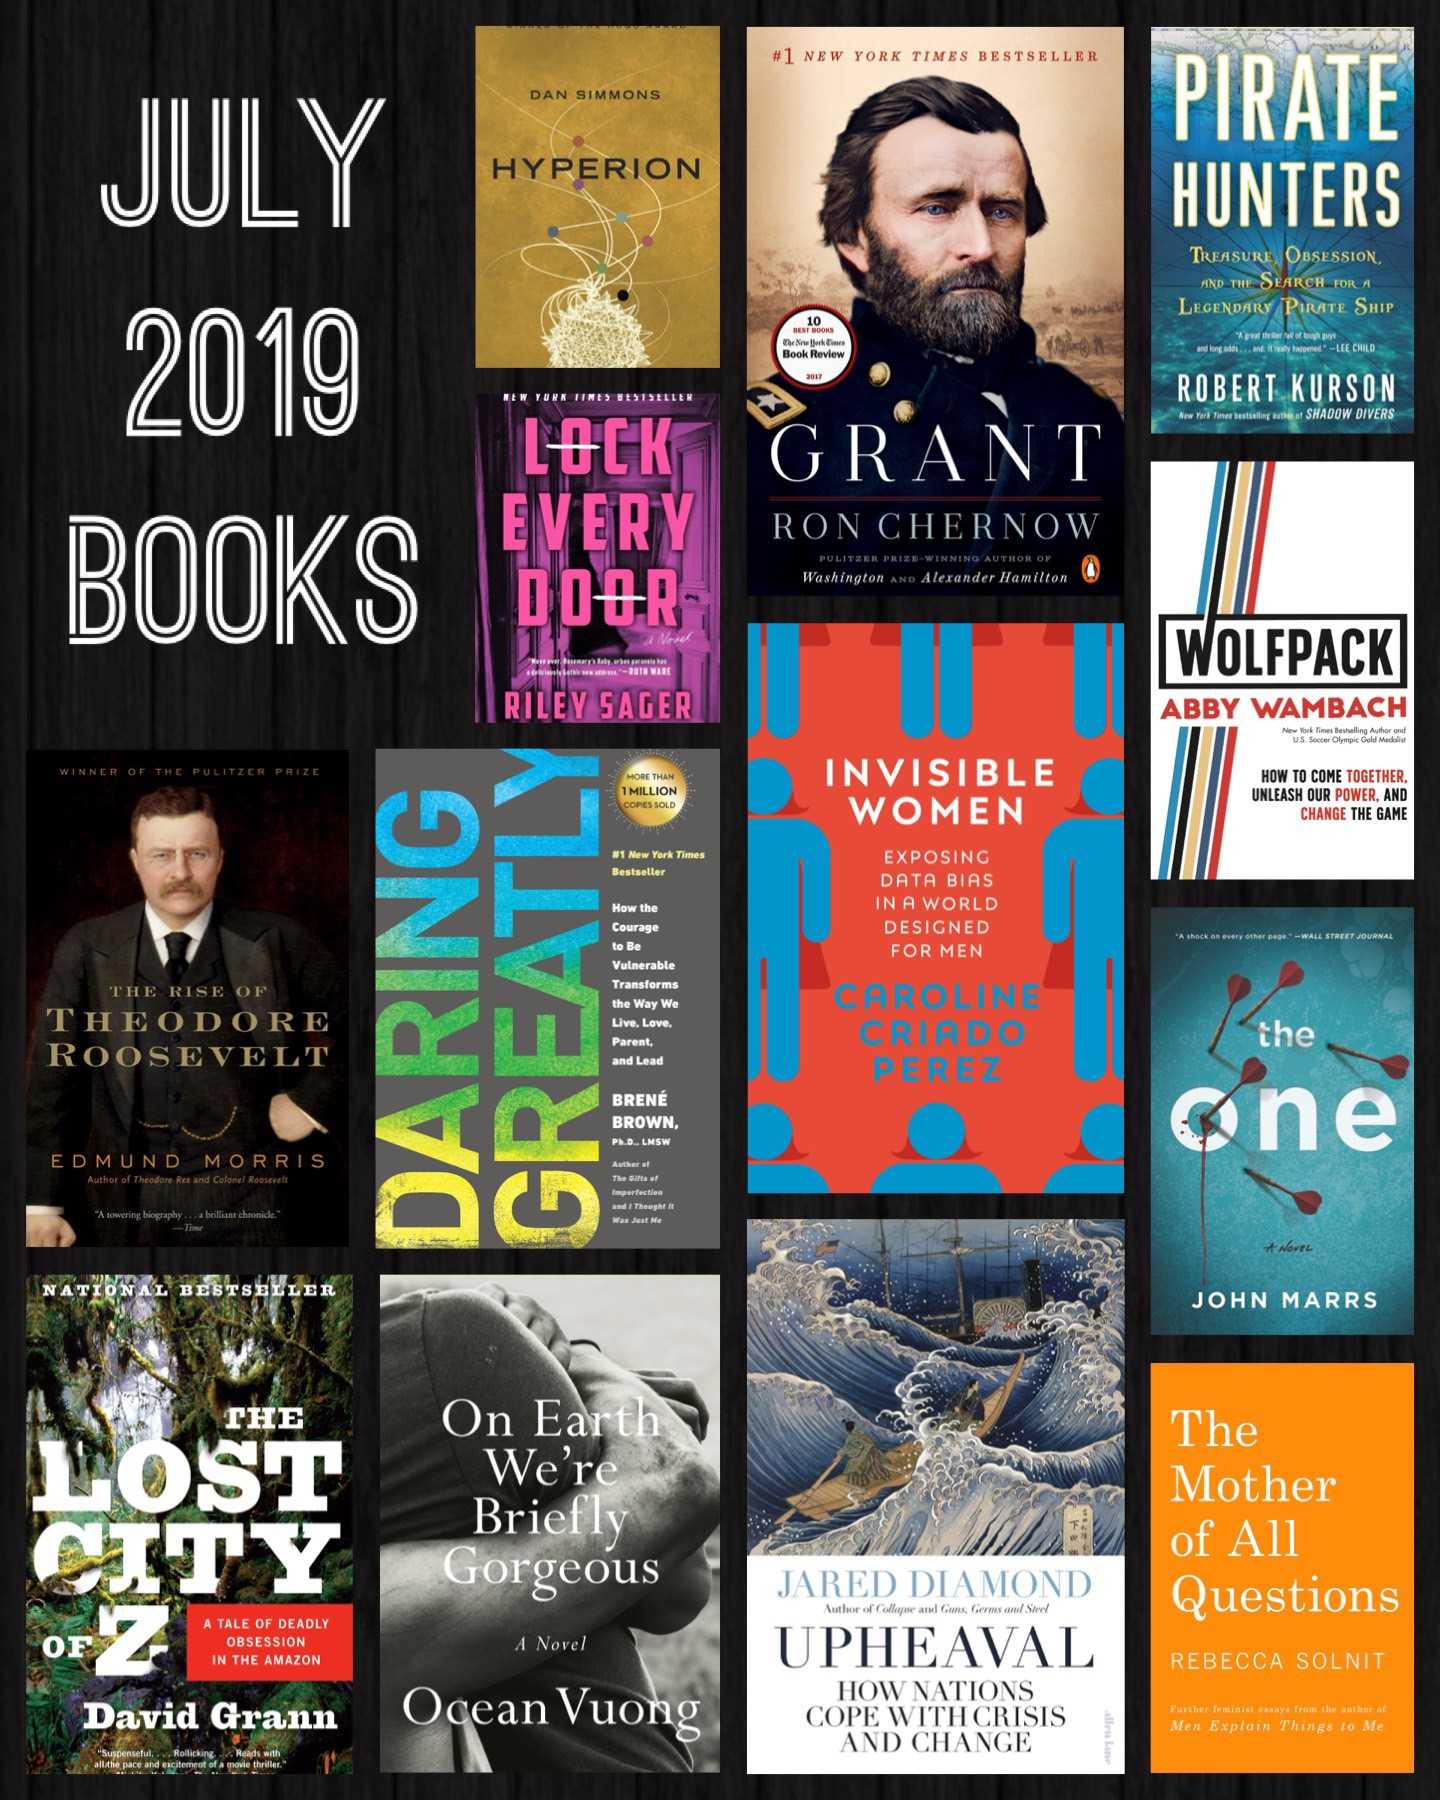 july 2019 books